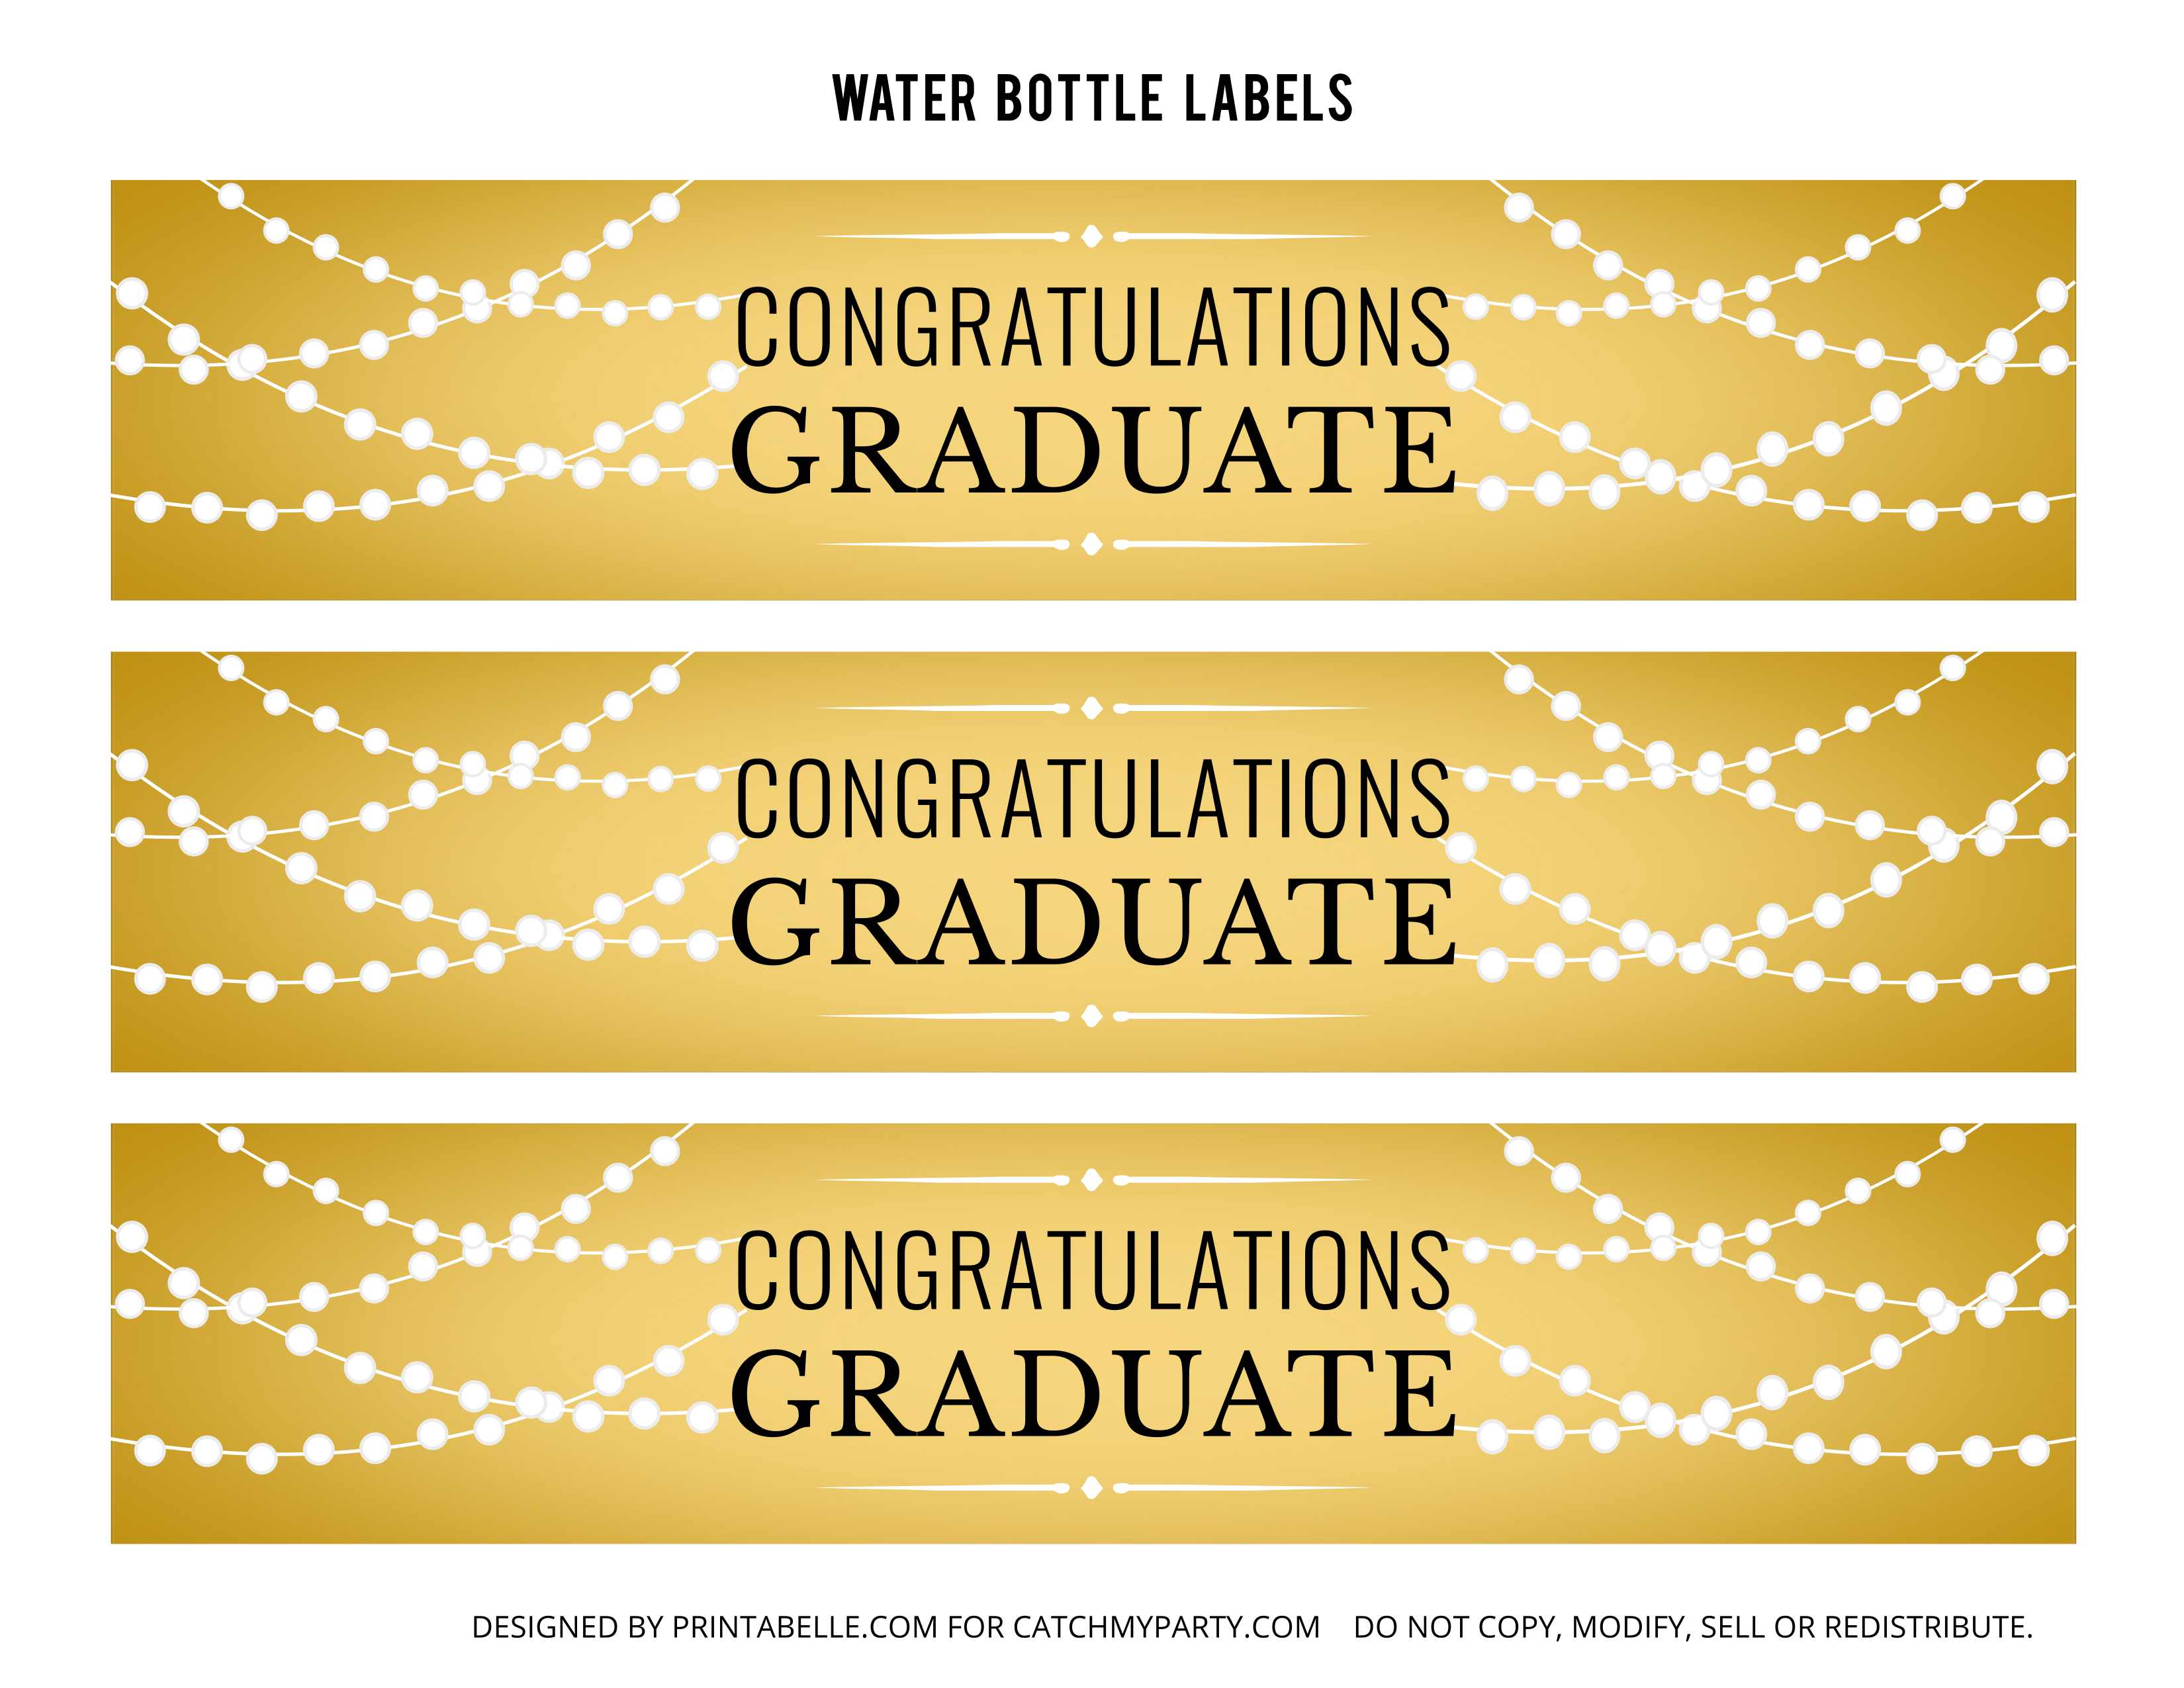 Free Gold Graduation Printables   Catch My Party - Free Printable Water Bottle Labels Graduation